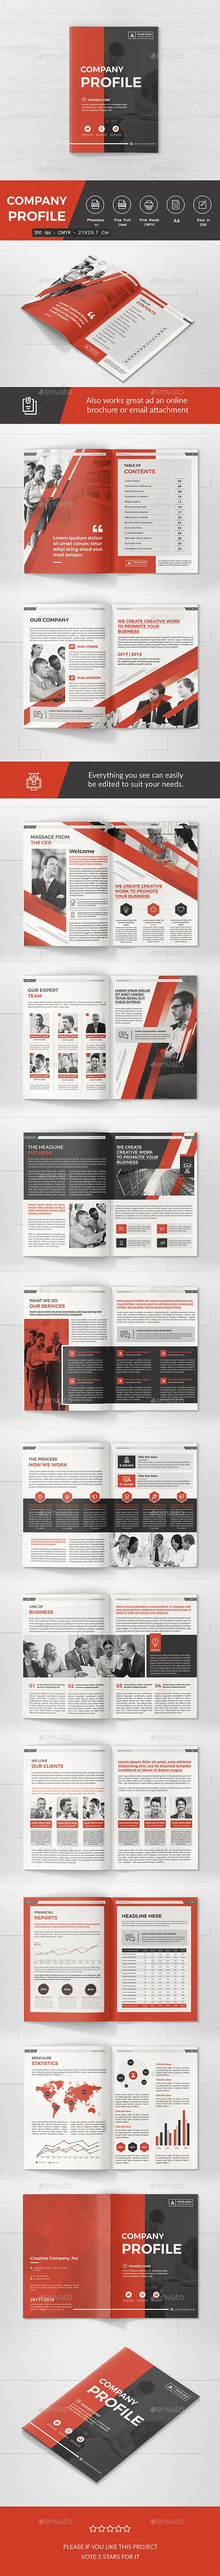 #Company Profile - #Corporate #Brochures Download here: https://graphicriver.net/item/company-profile/19549824?ref=alena994